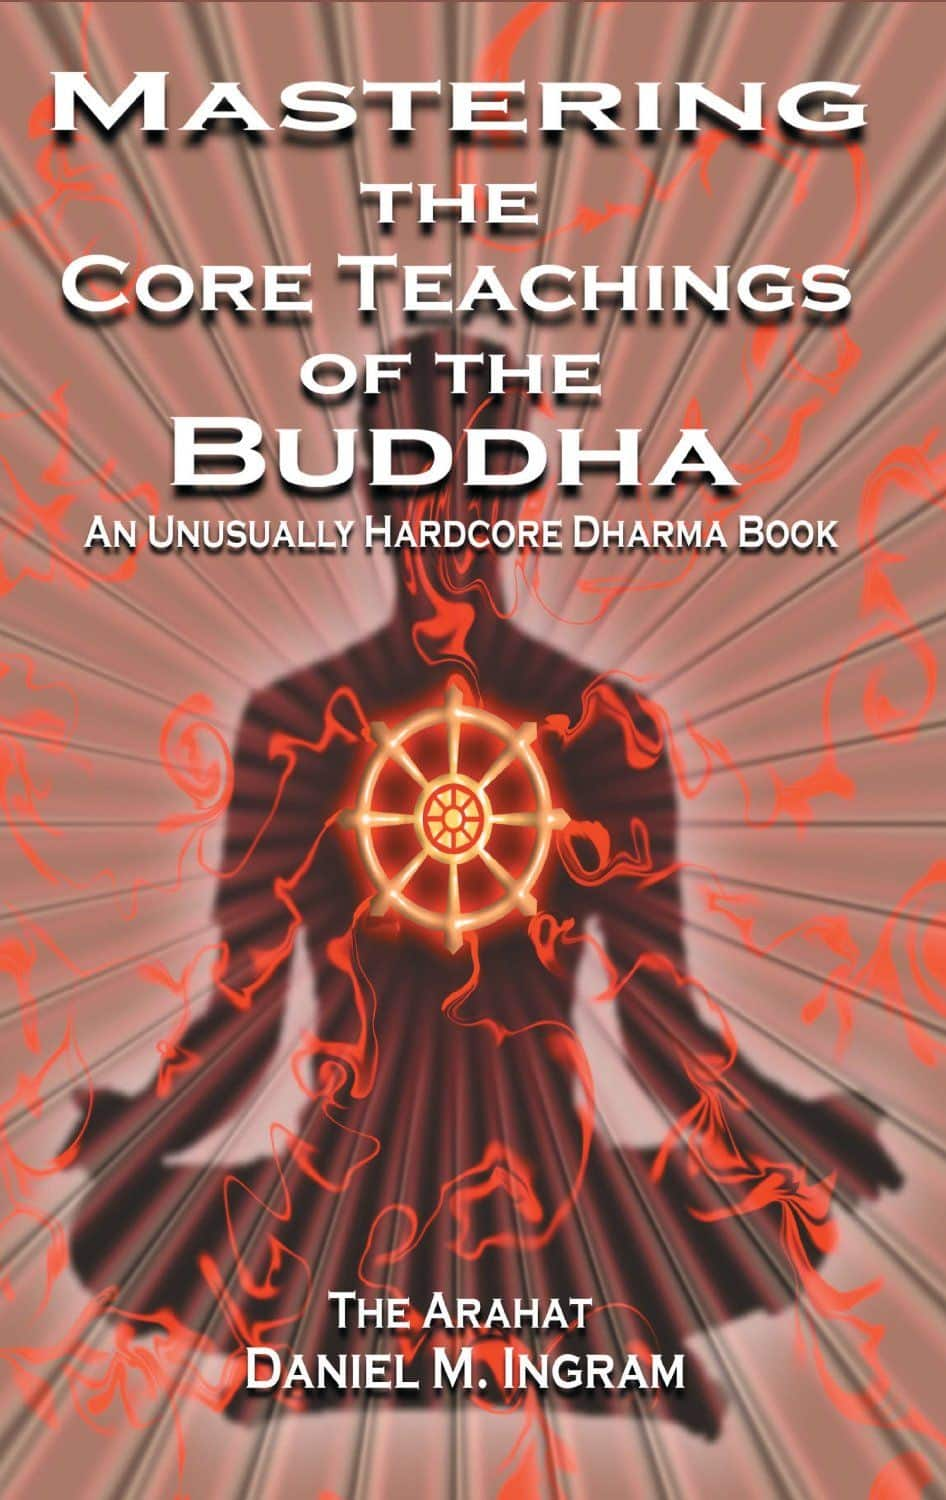 Download books sacred spiritual texts and pdf e books mastering the core teachings of the buddha ccuart Choice Image